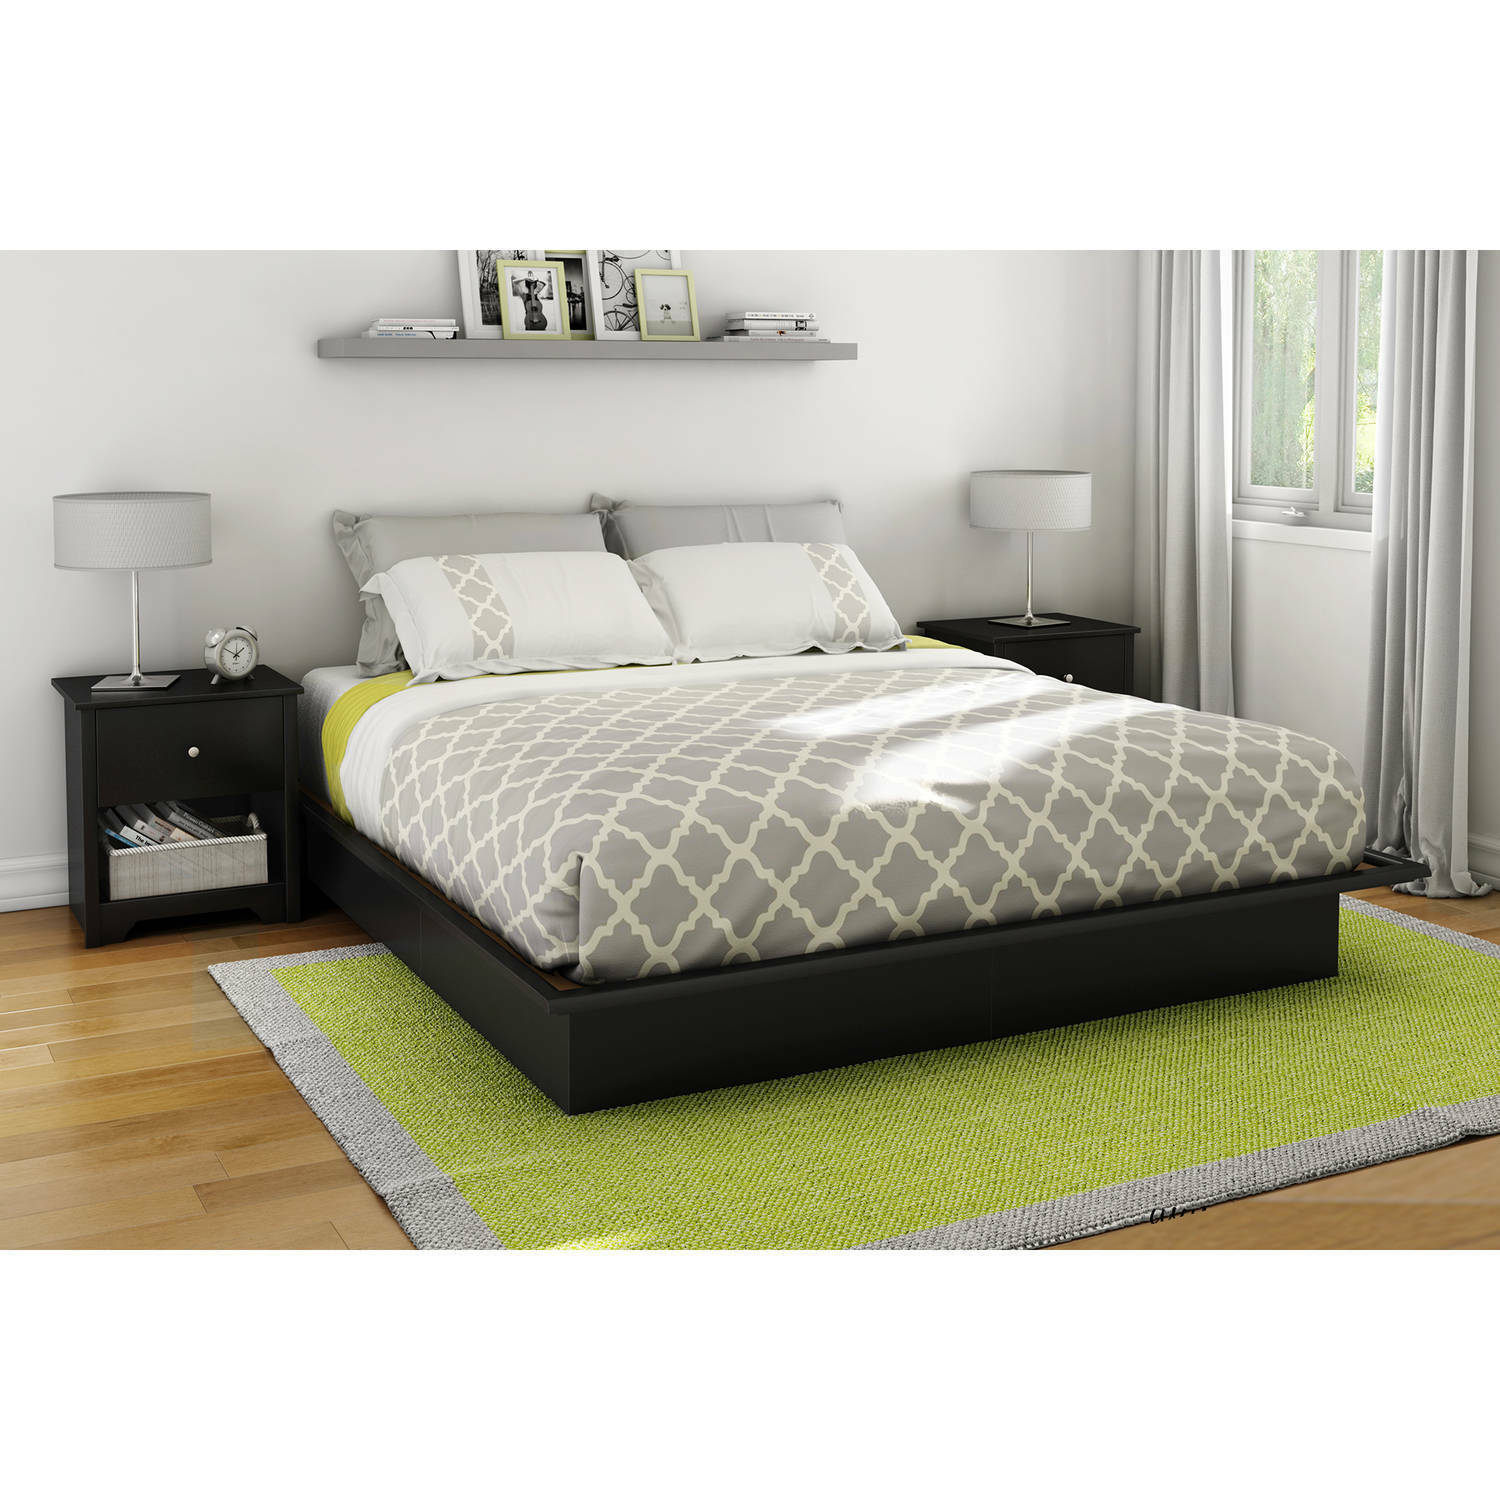 Platform Bed Frame Full Queen King Size Sizes Bedroom South